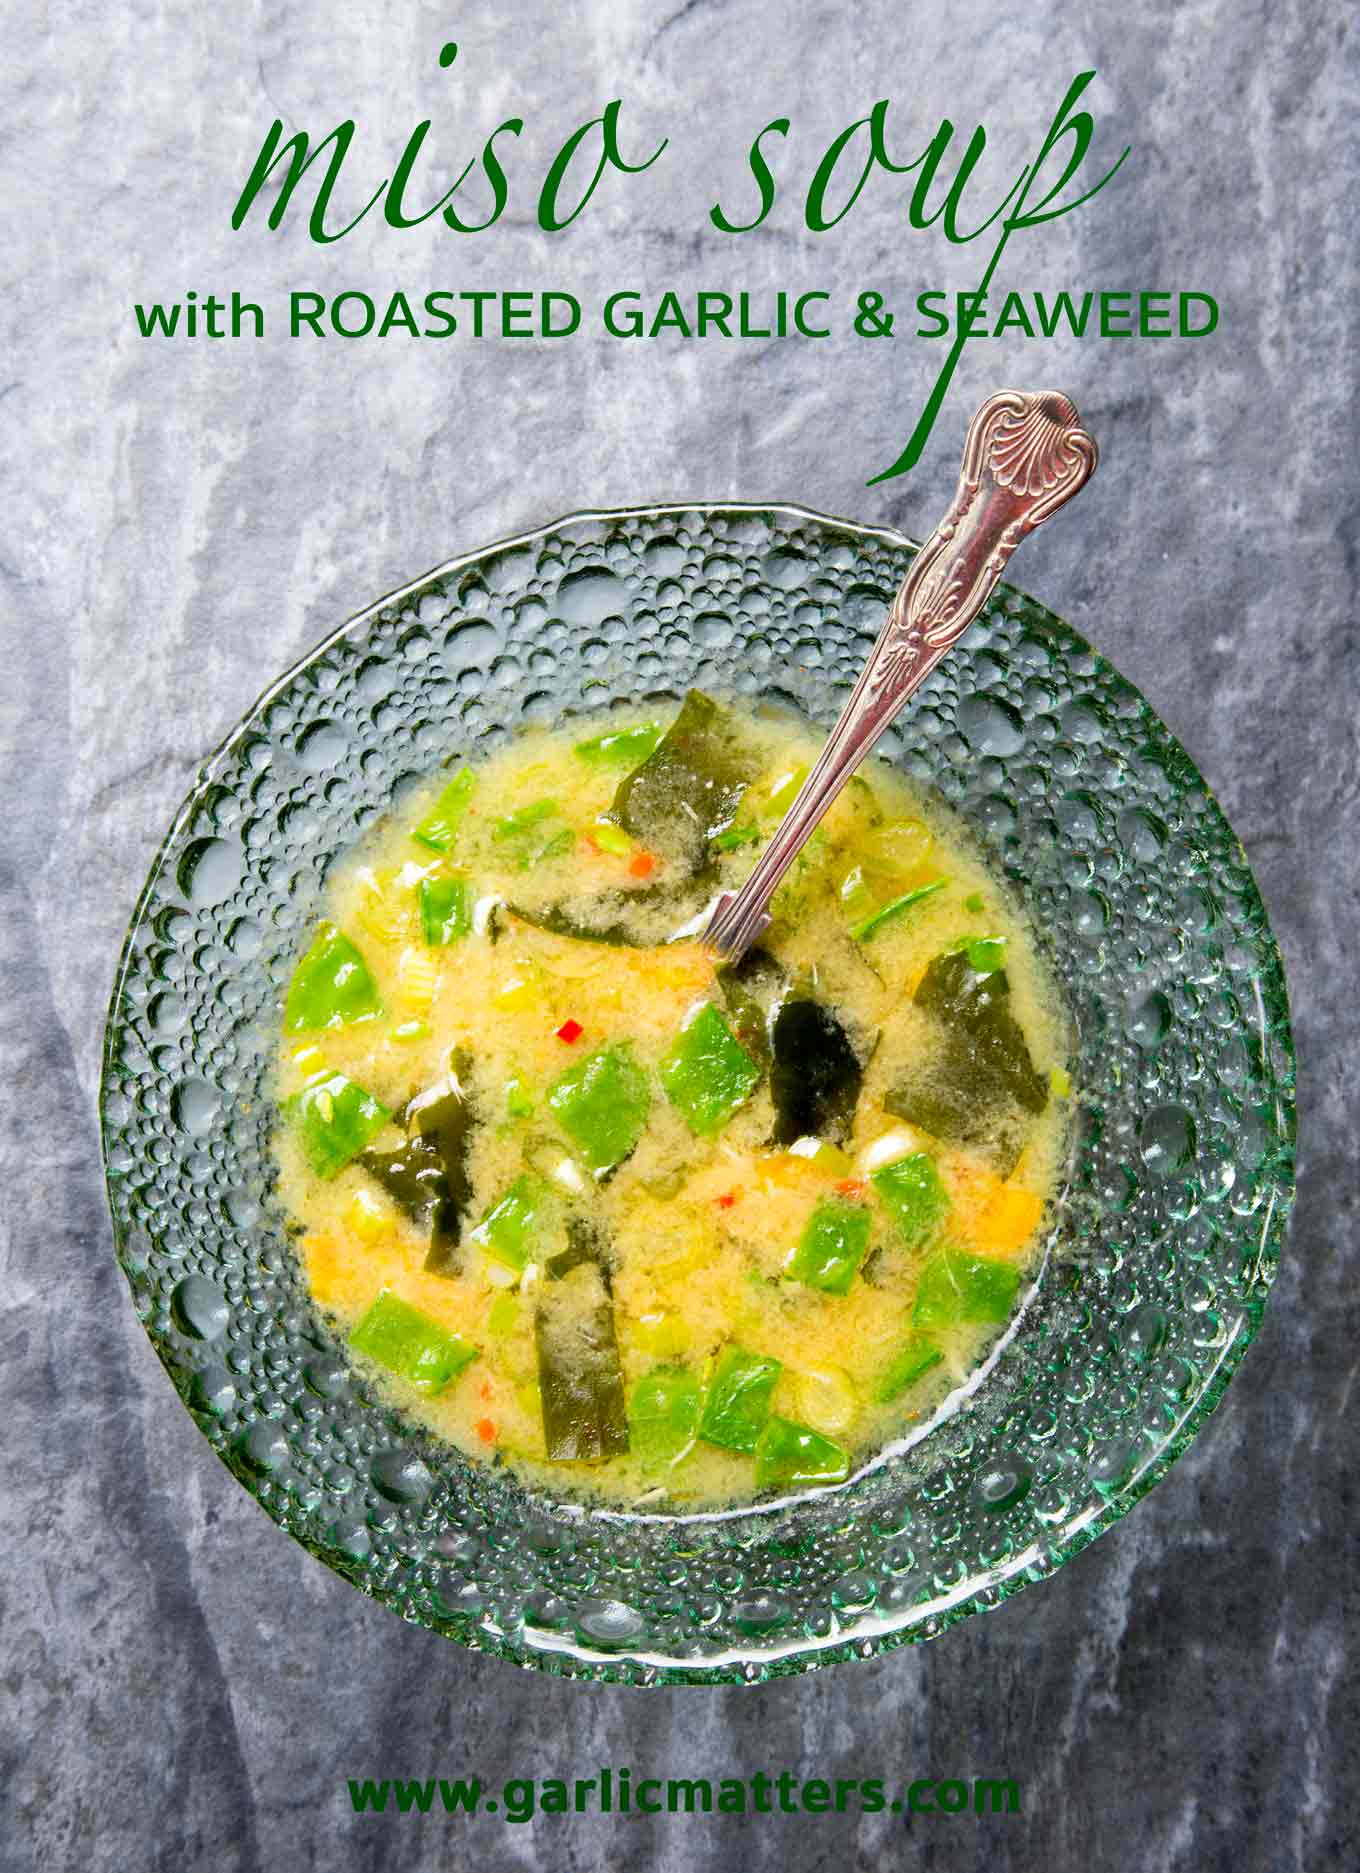 Miso Soup with Roasted Garlic and Seaweed is filled with tasty, bold, but balanced flavours of popular super-foods. 20min, vegetarian recipe.